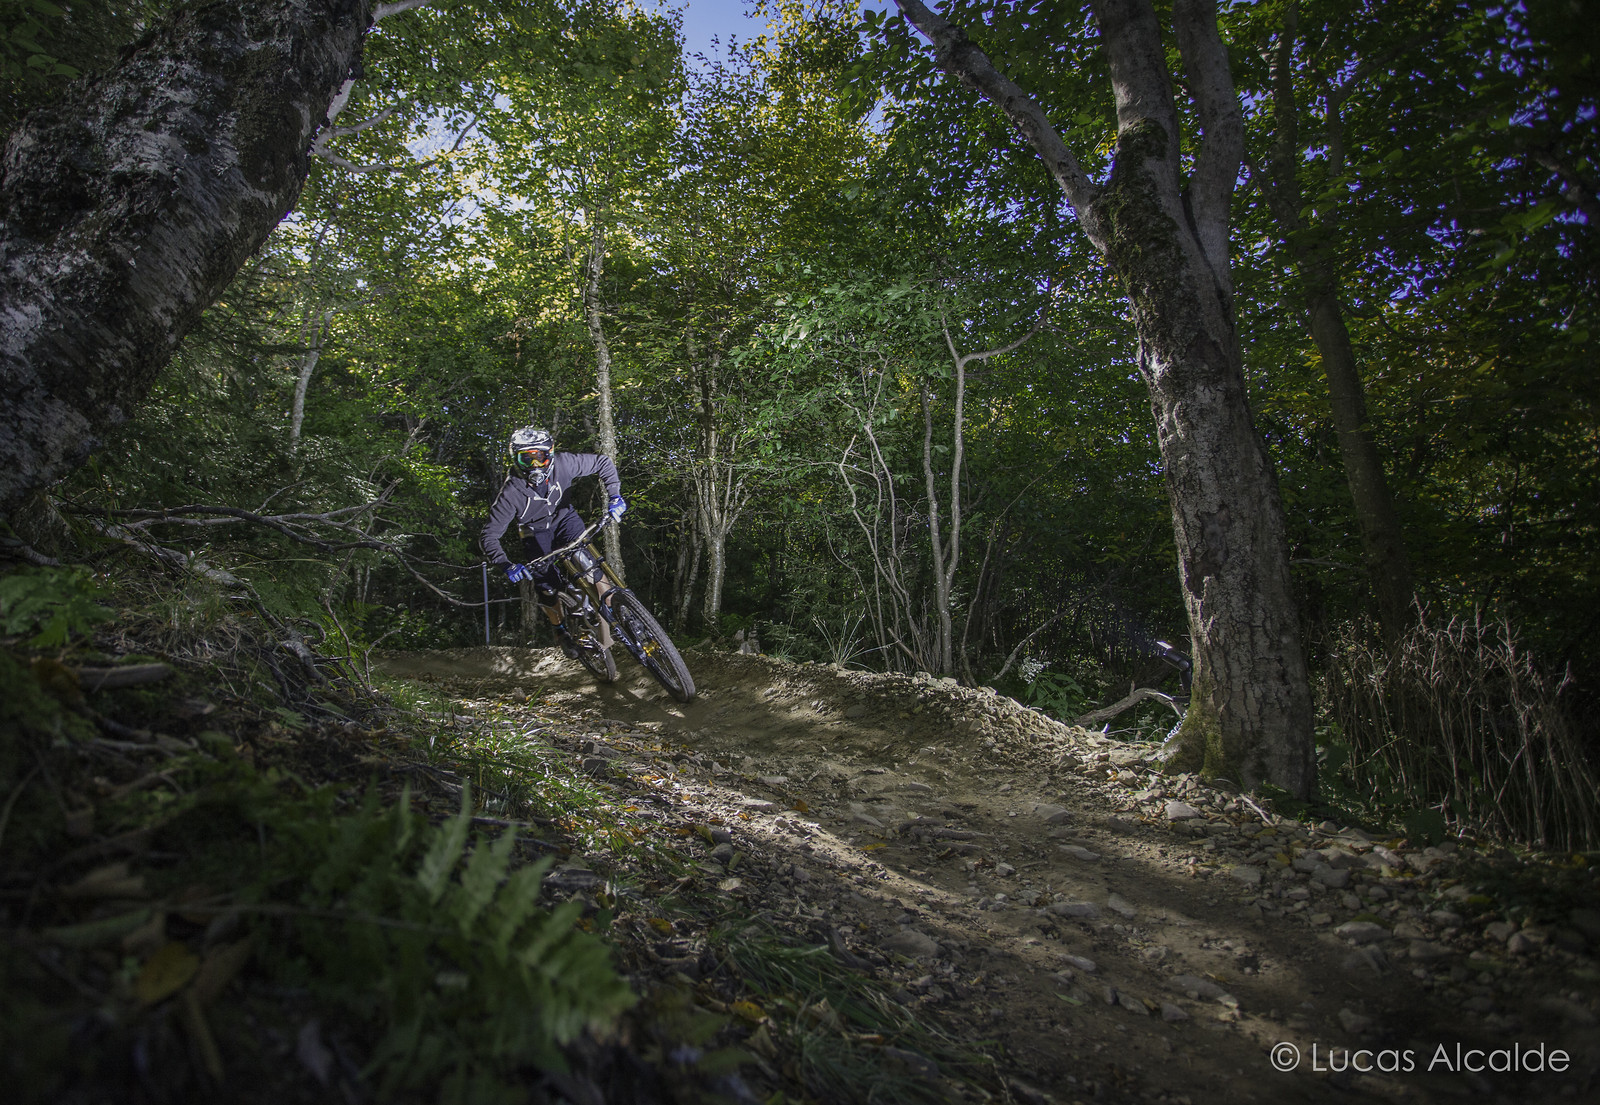 Mike Thomas + Snowshoe = Shred! - Lucas_Alcalde - Mountain Biking Pictures - Vital MTB